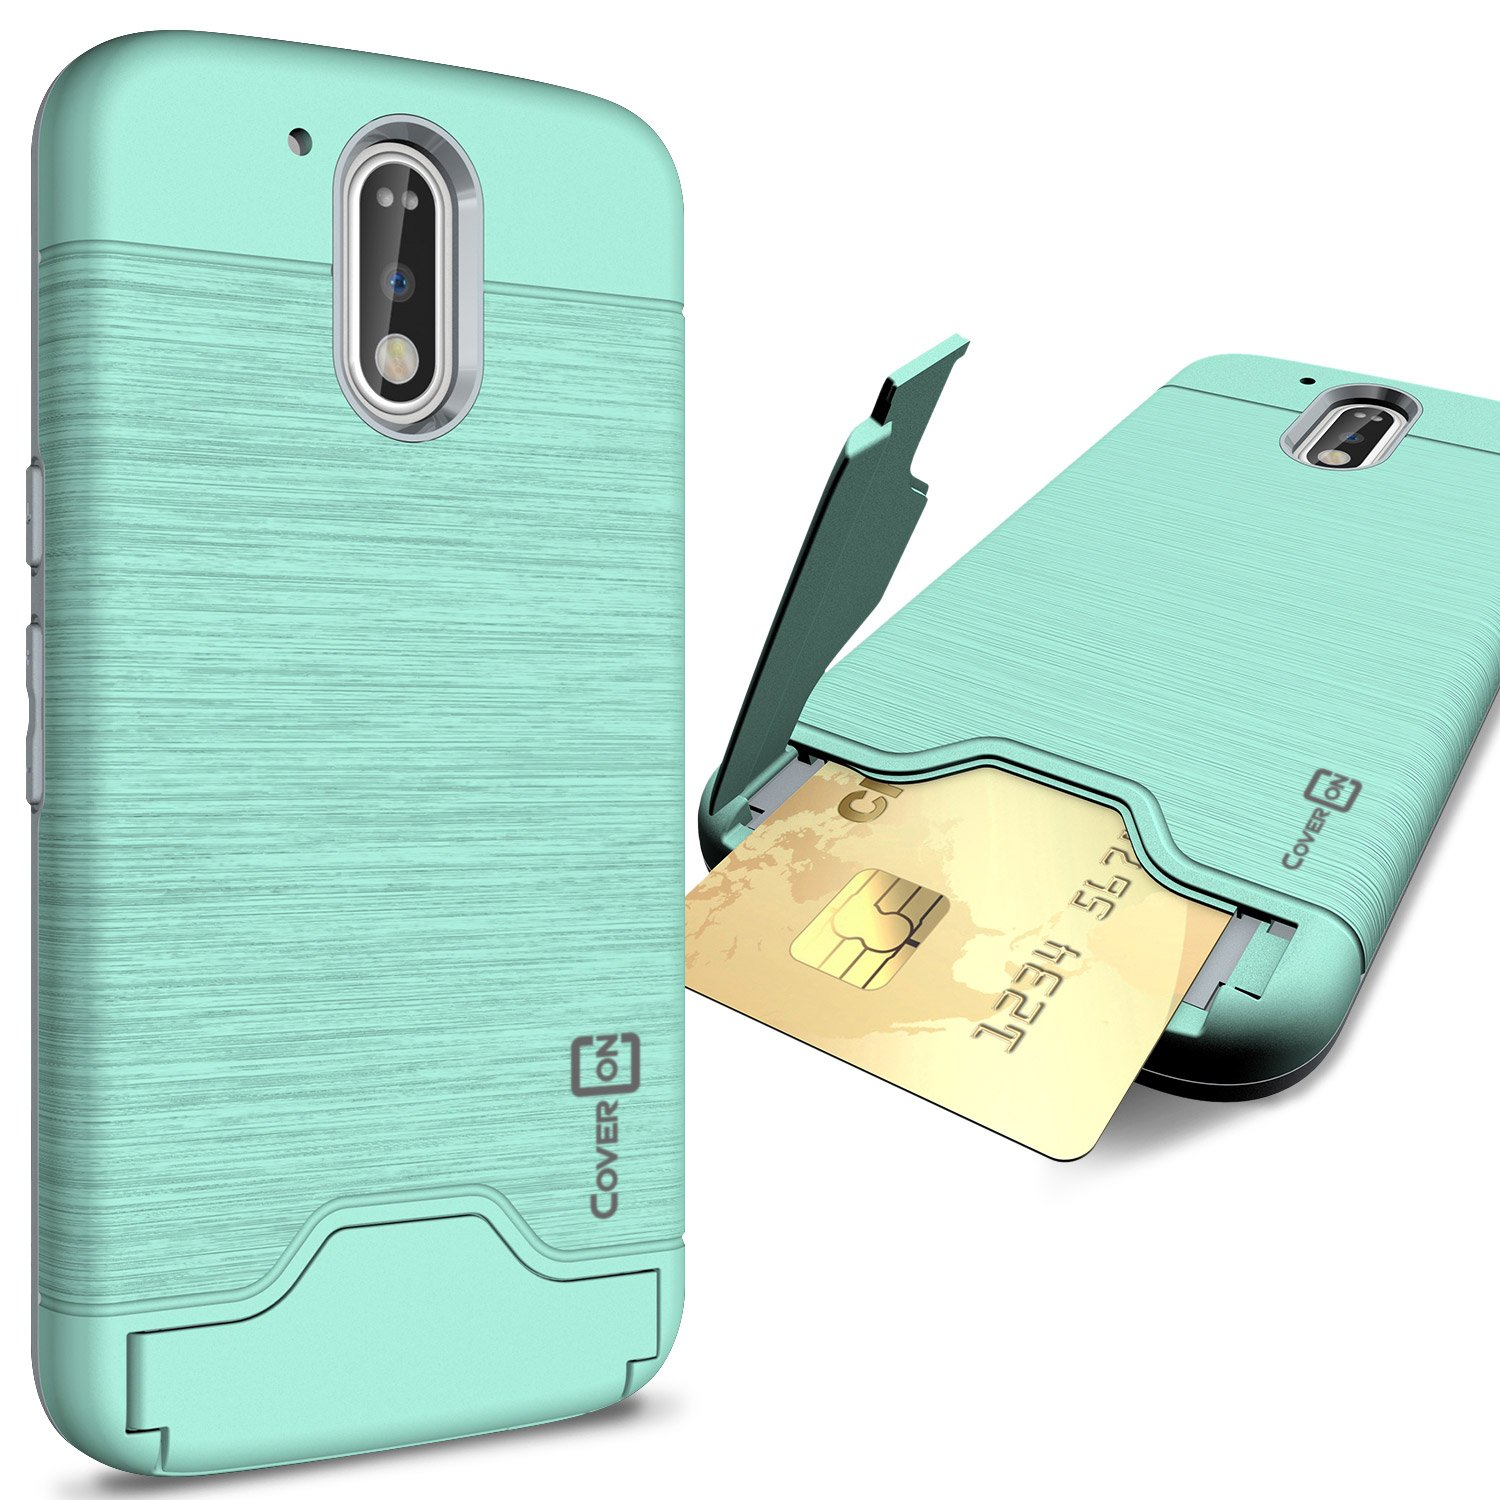 detailed look 9fa18 42029 Moto G4 Case, Moto G4 Plus Case, Moto G 4th Gen case, CoverON [SecureCard  Series] Protective Hard Hybrid Cover Credit Card Slot Stand Phone Case for  ...